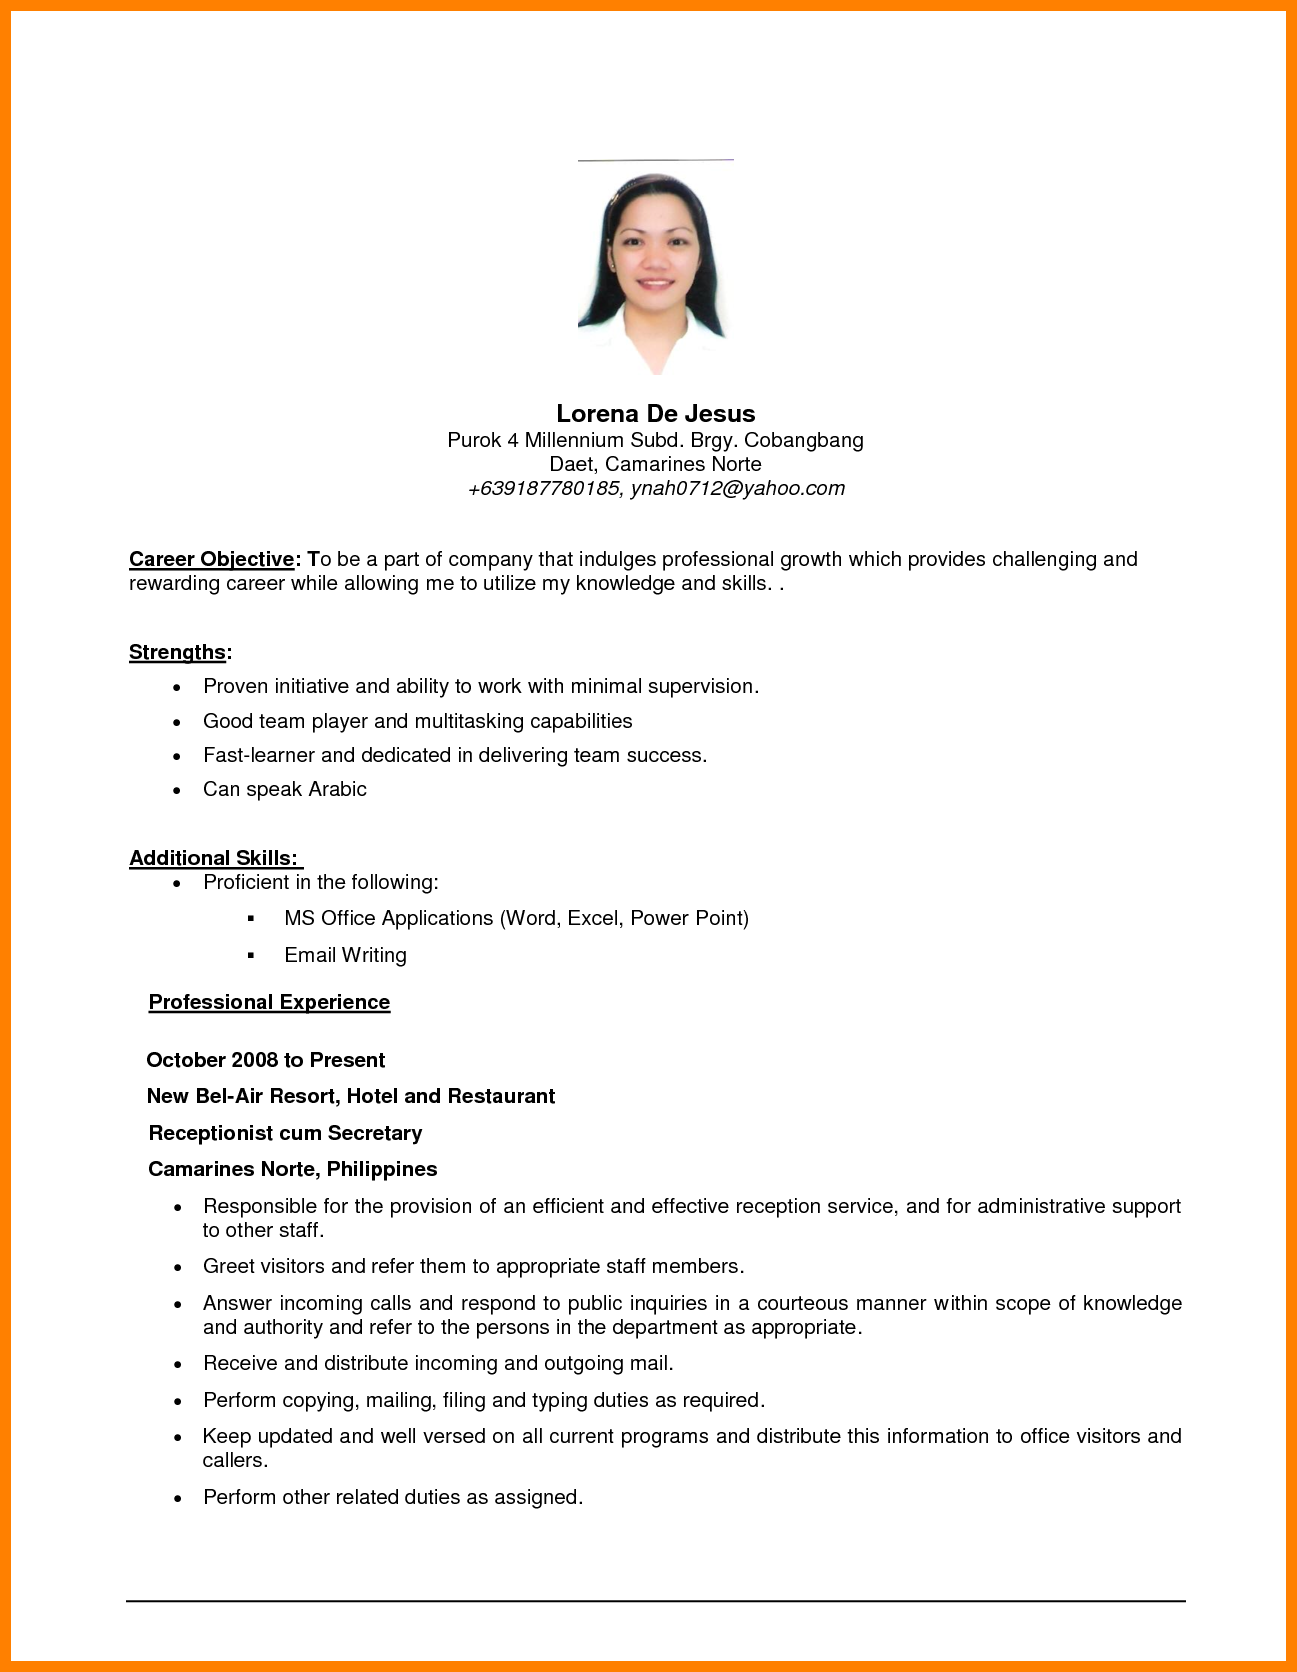 Resume Objective Ideas Resume Objective Sample Computer Skills Examples For Example Your